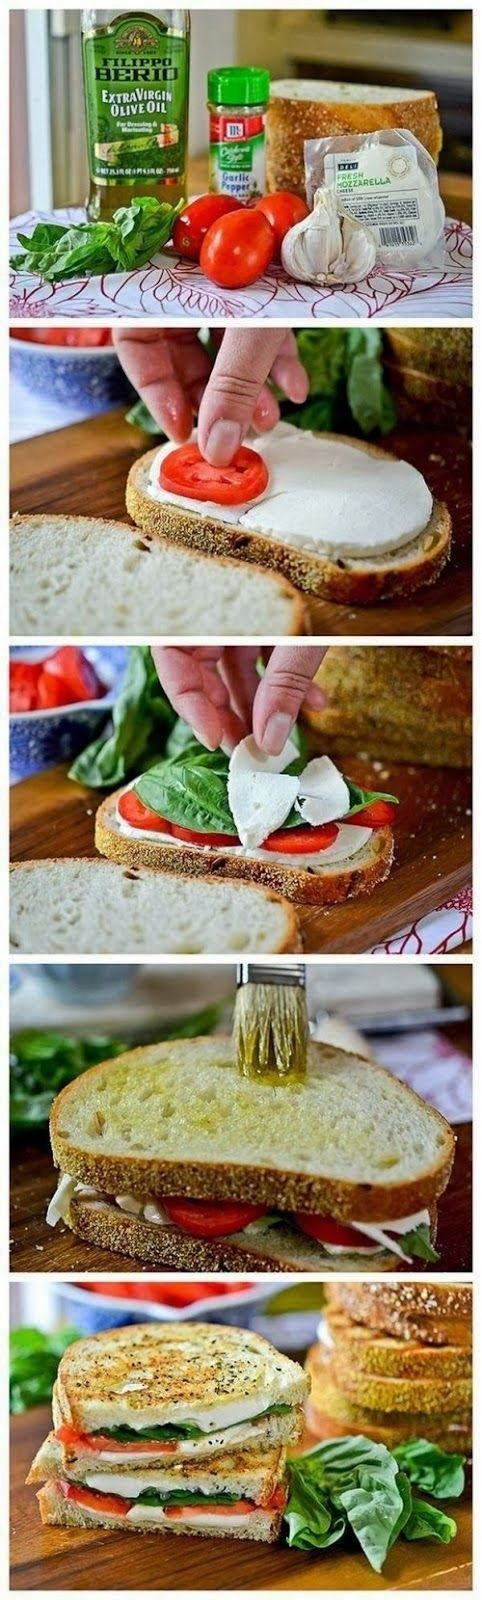 Grilled Margherita Sandwiches | These are so, so good and really simple sandwiches to make!